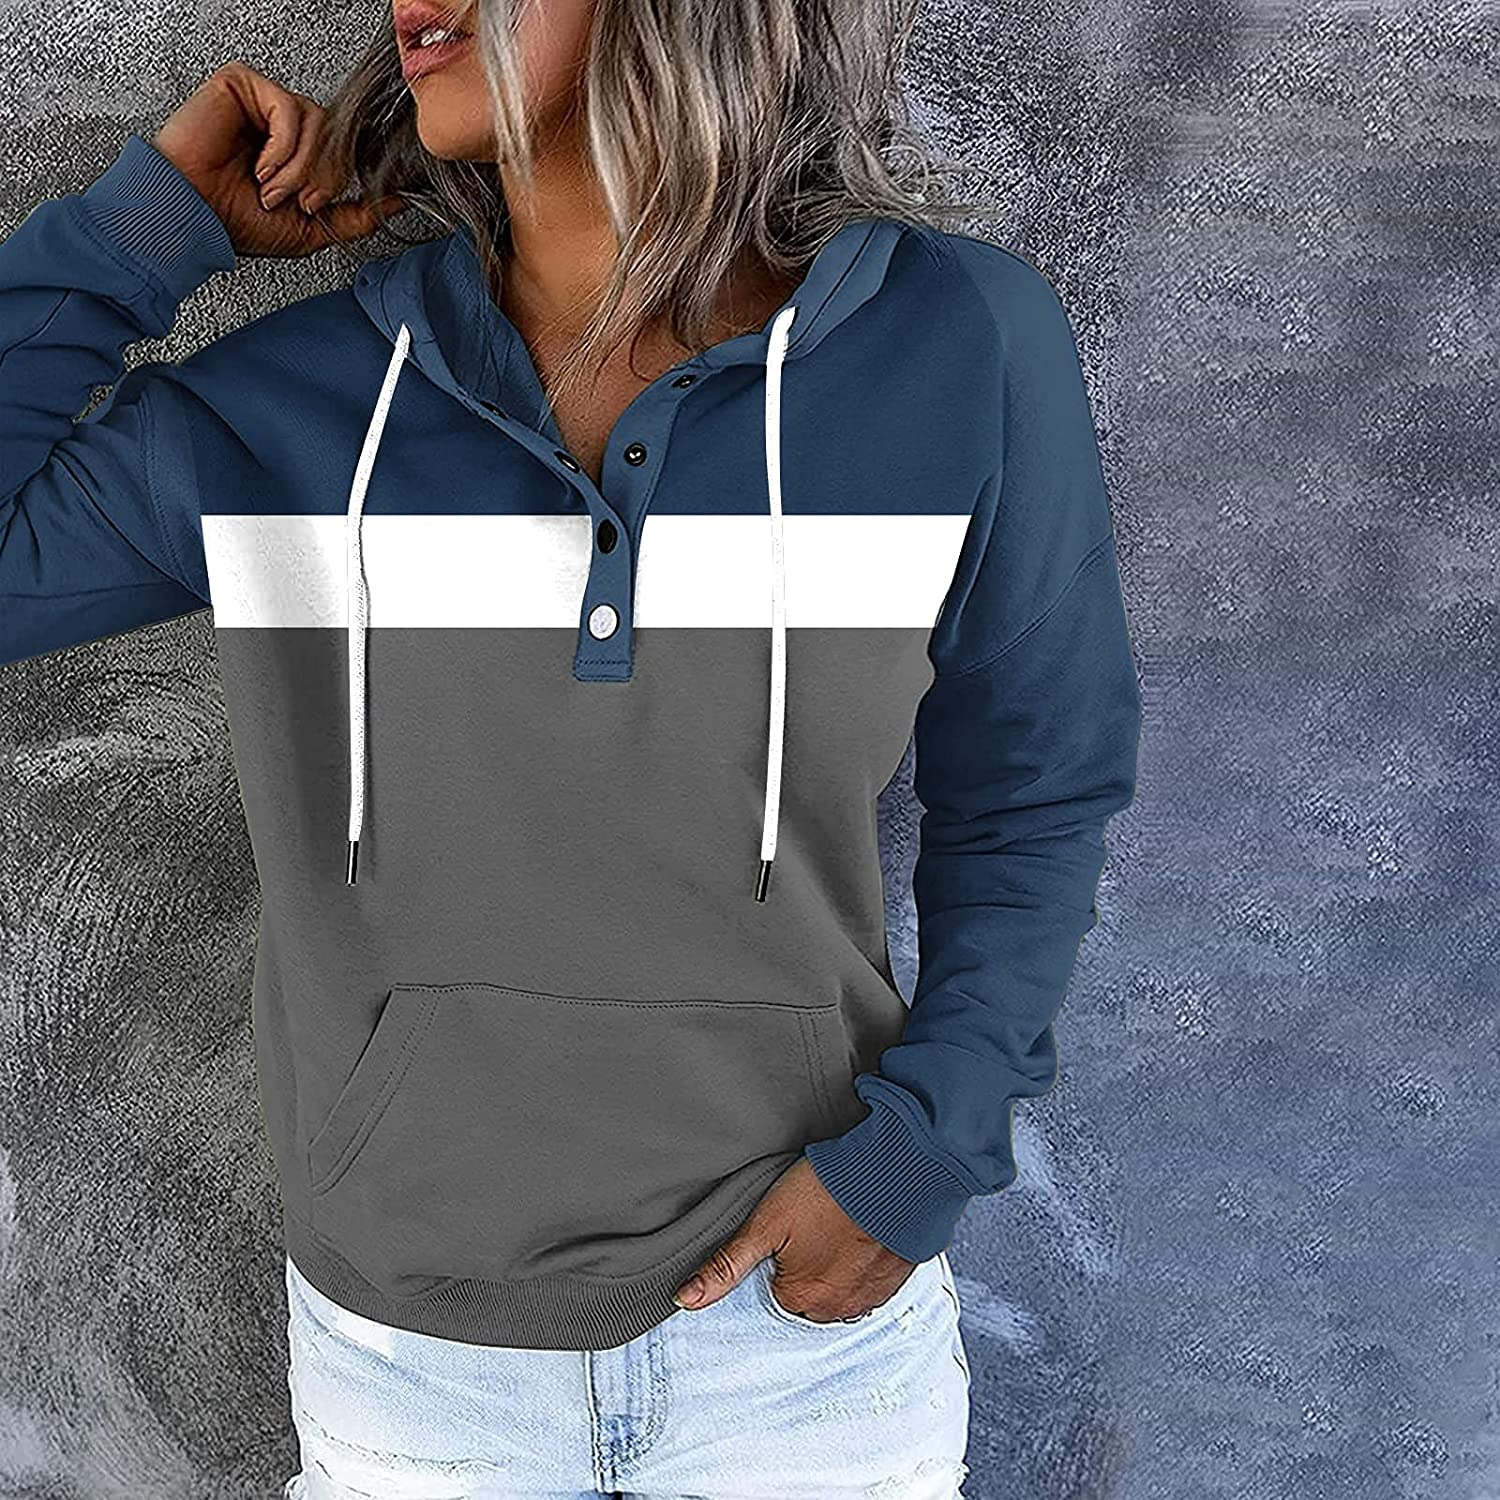 BOXIACEY Women's Hooded Pullover Fashion Stitching Buttons Sweatshirt Casual Pocket Long-Sleeved Drawstring Hoodies